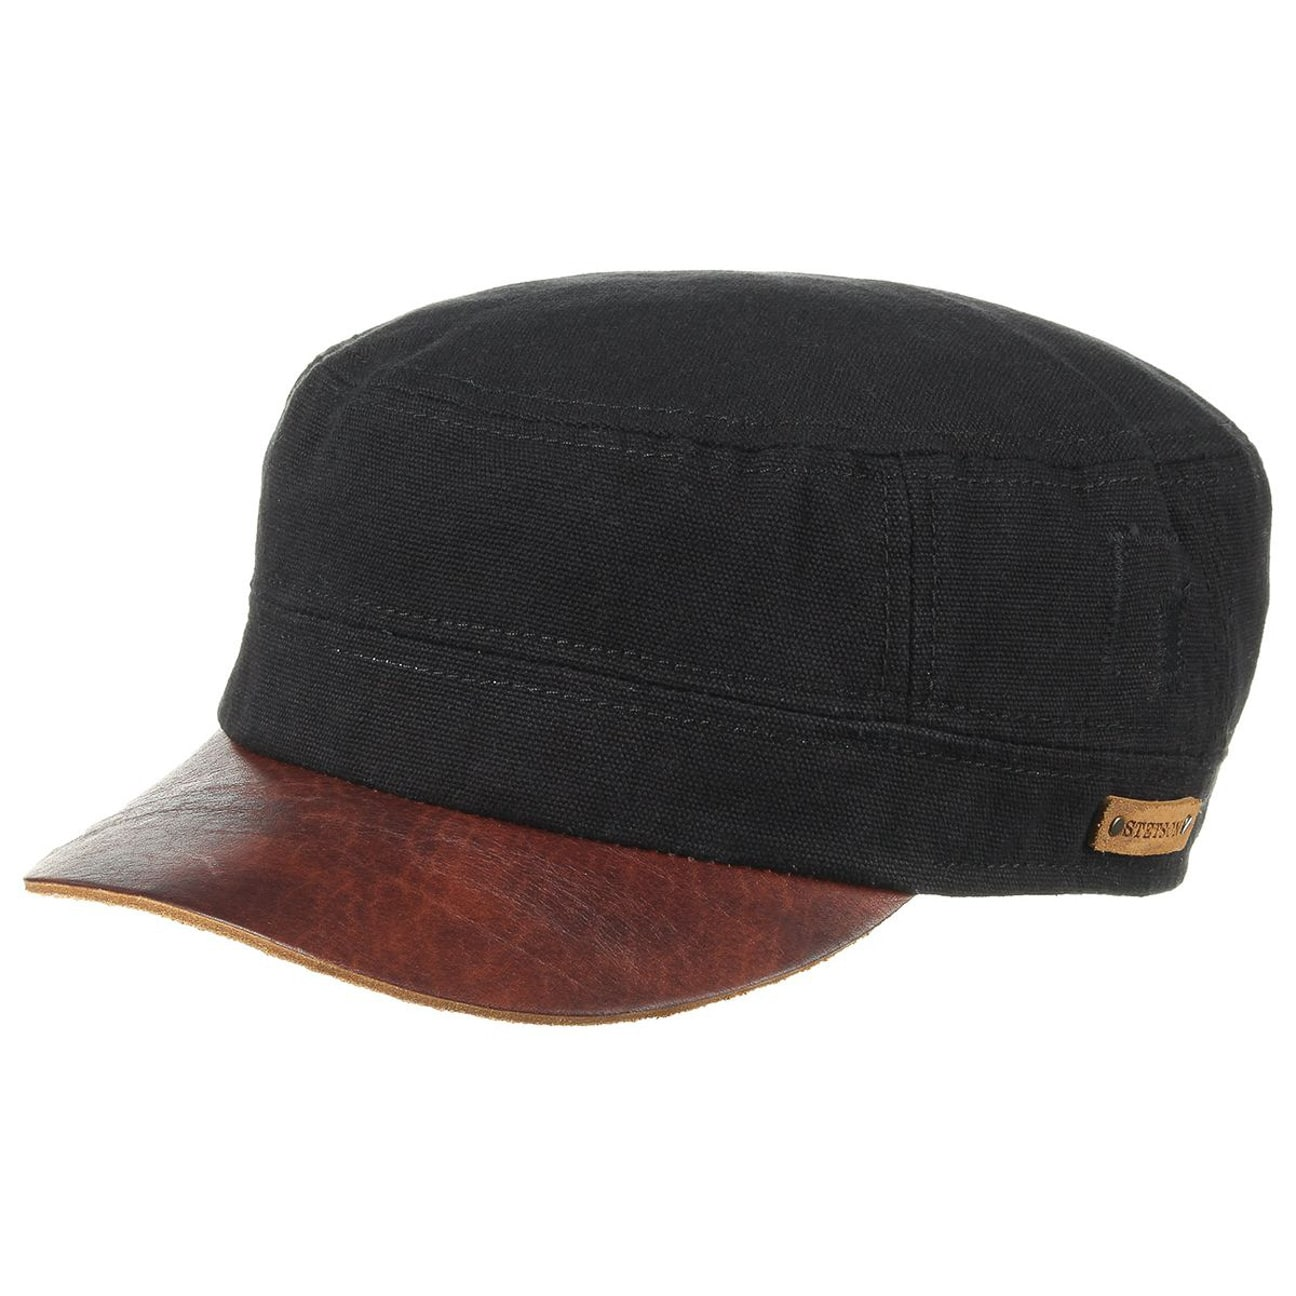 Gates Canvas Army Cap By Stetson Gbp 59 00 Gt Hats Caps